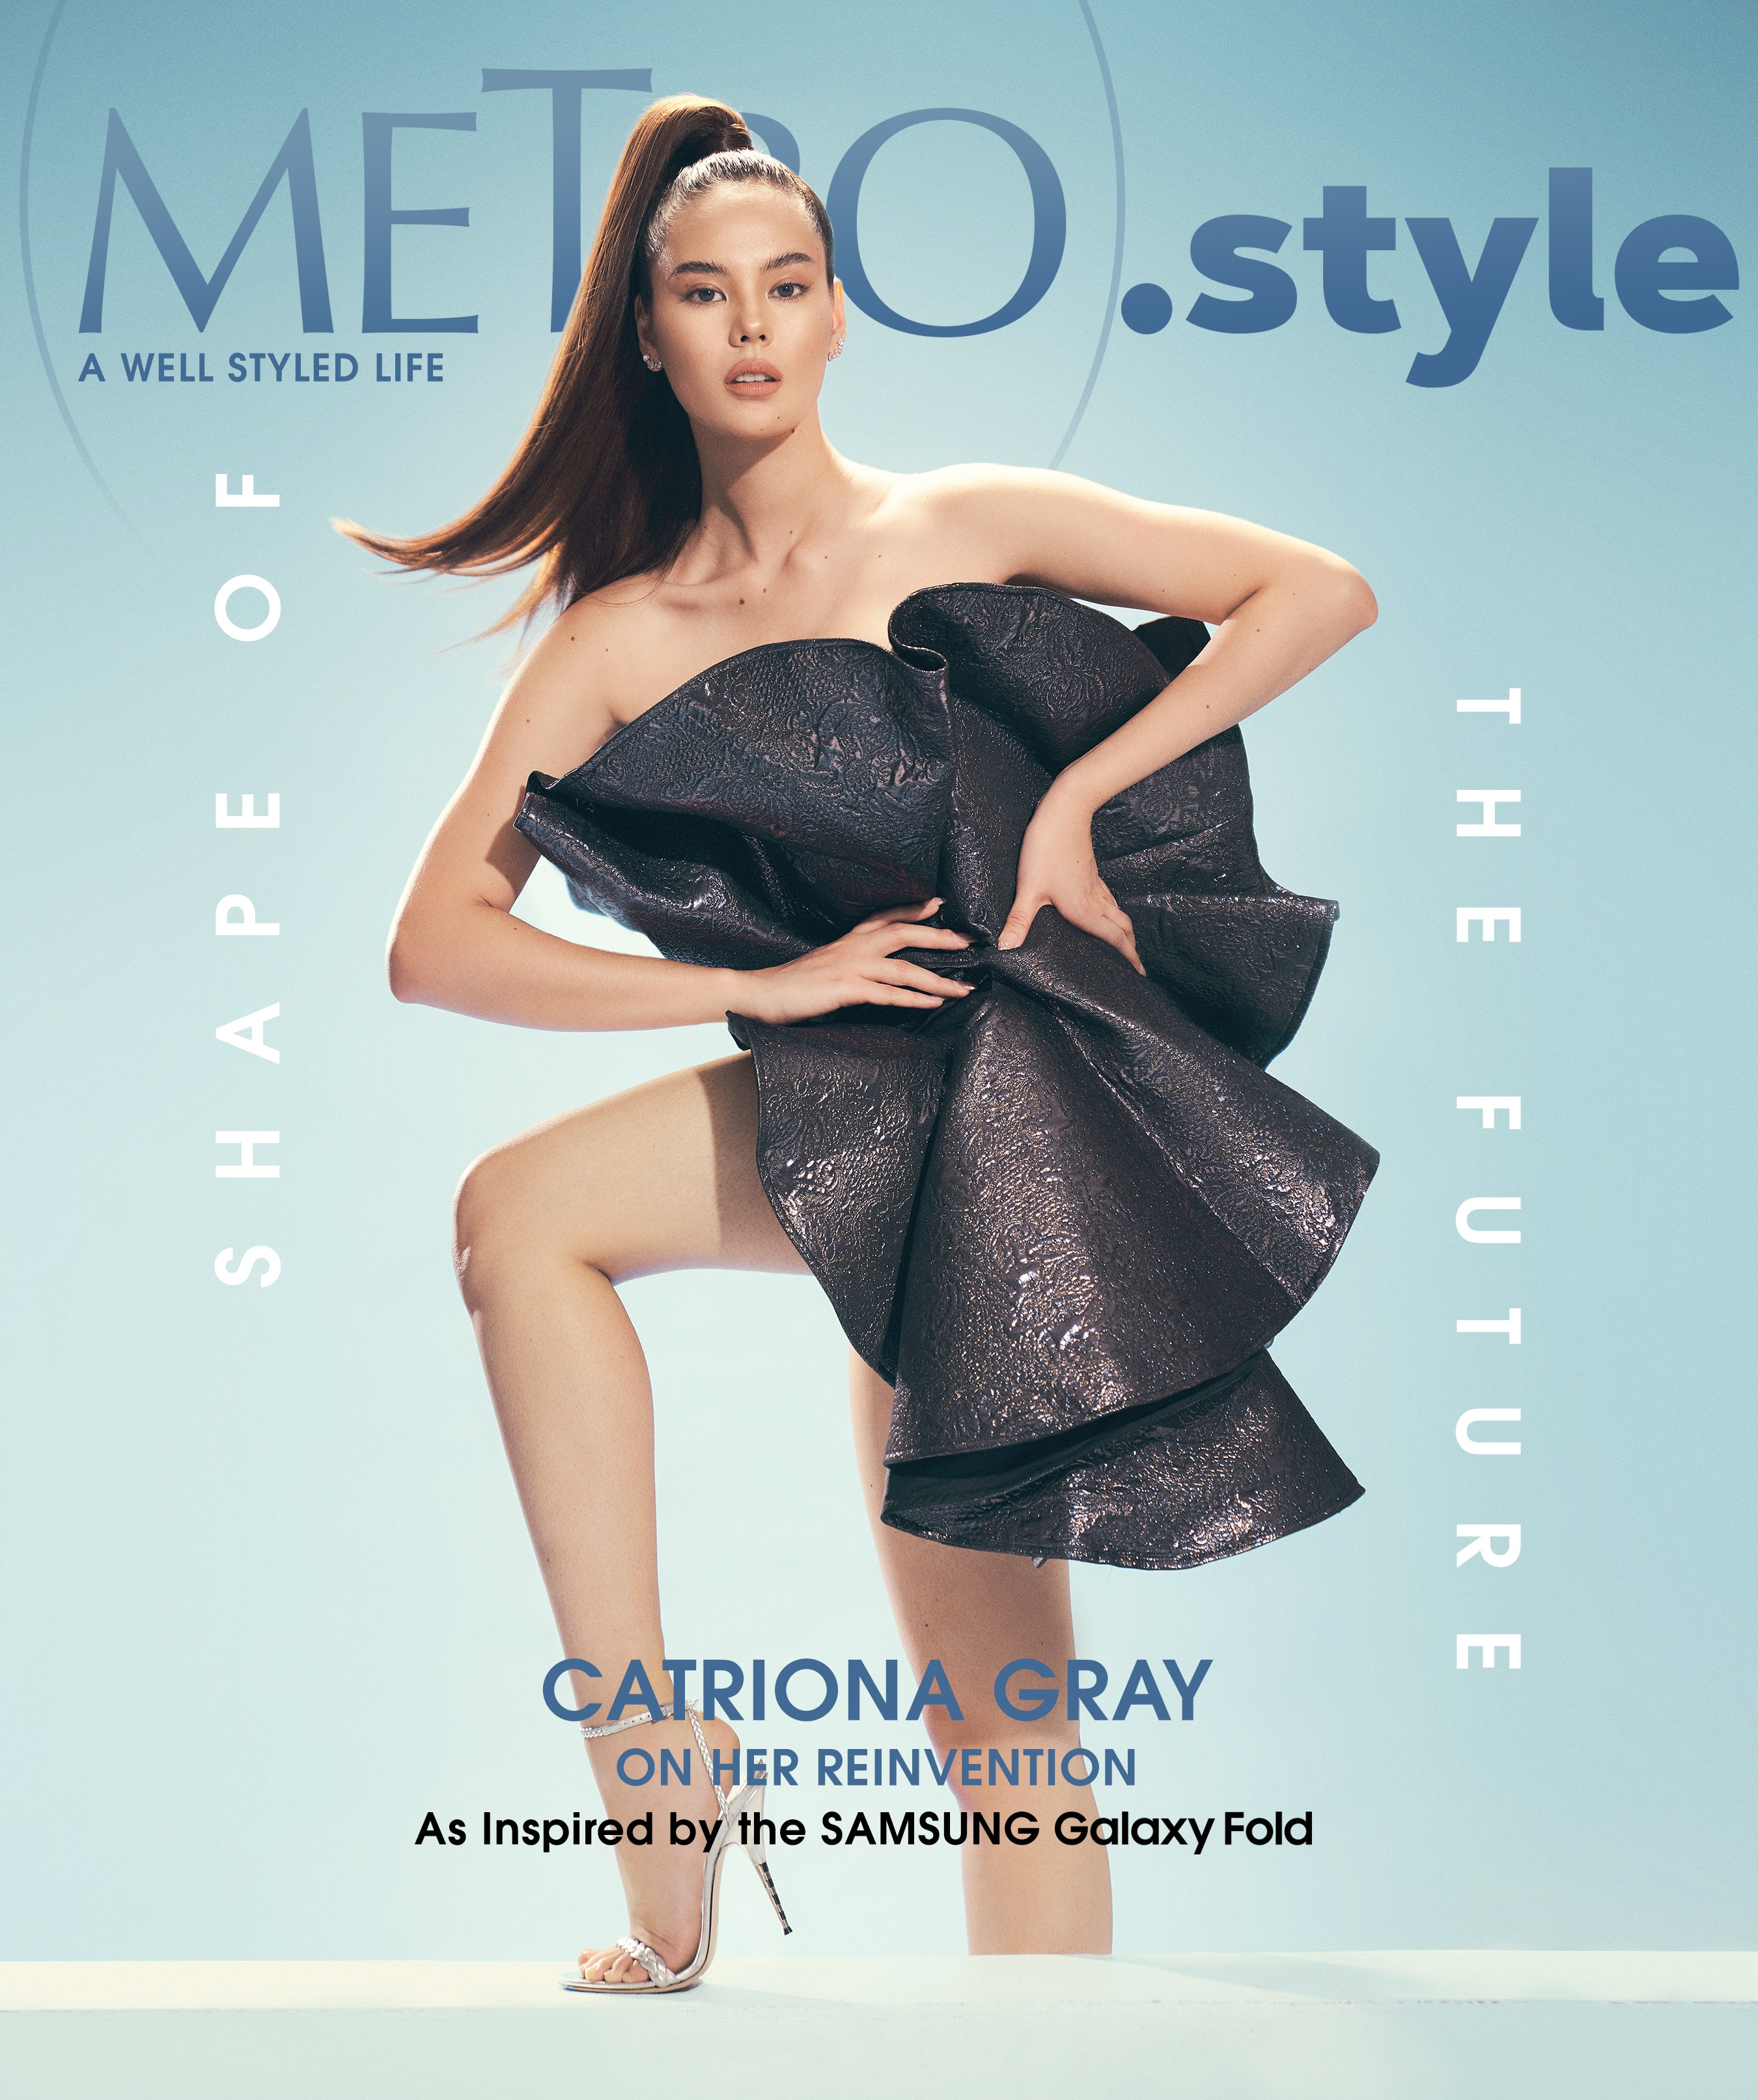 Catriona's Metro.Style cover is inspired by Samsung Galaxy Fold